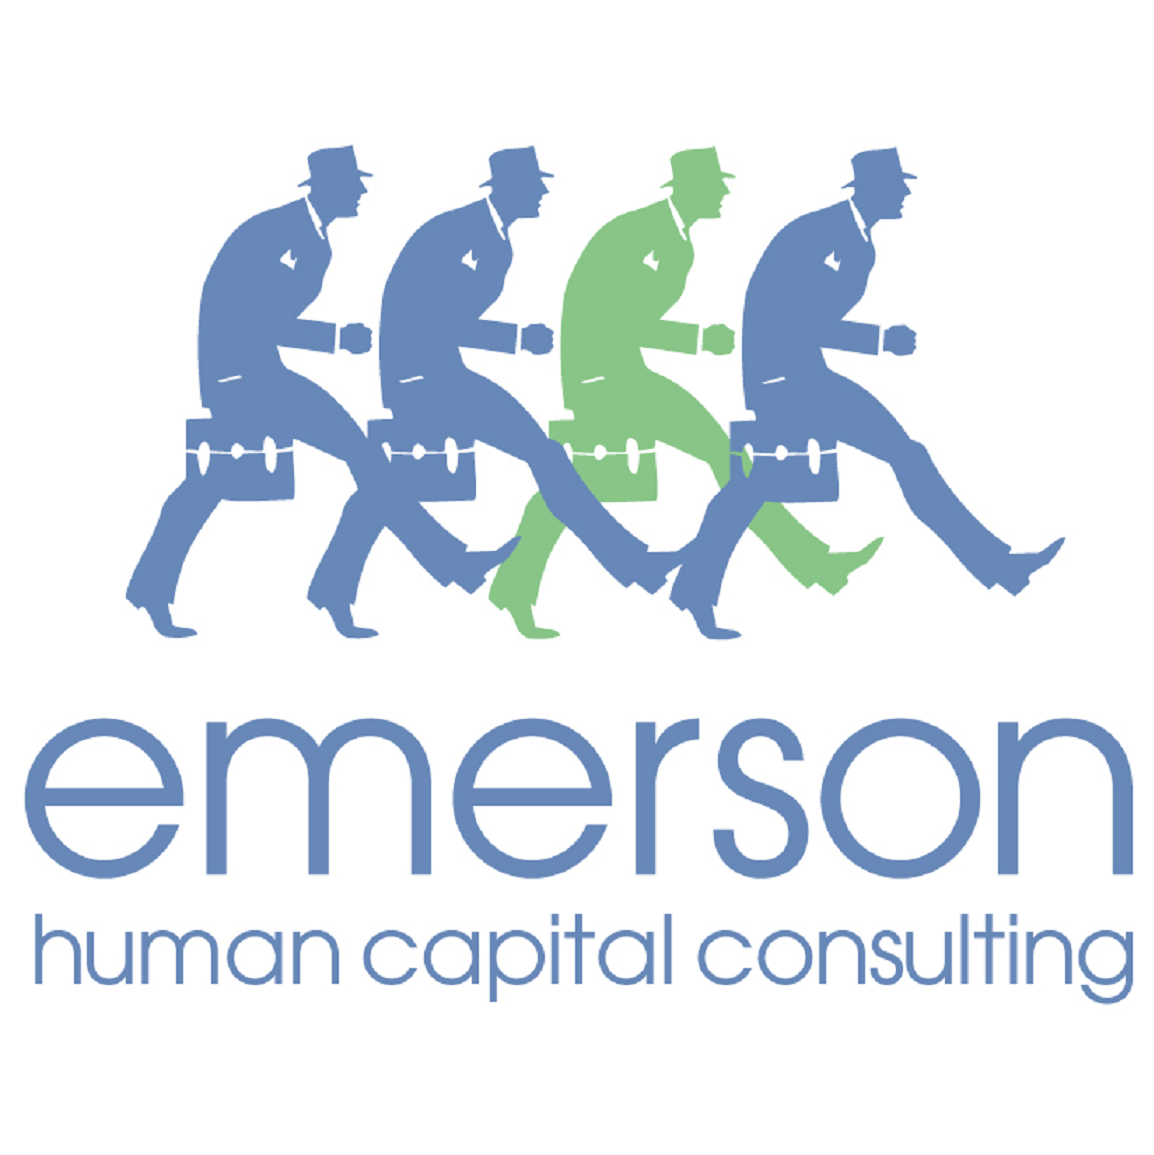 Emerson Human Capital Consulting logo